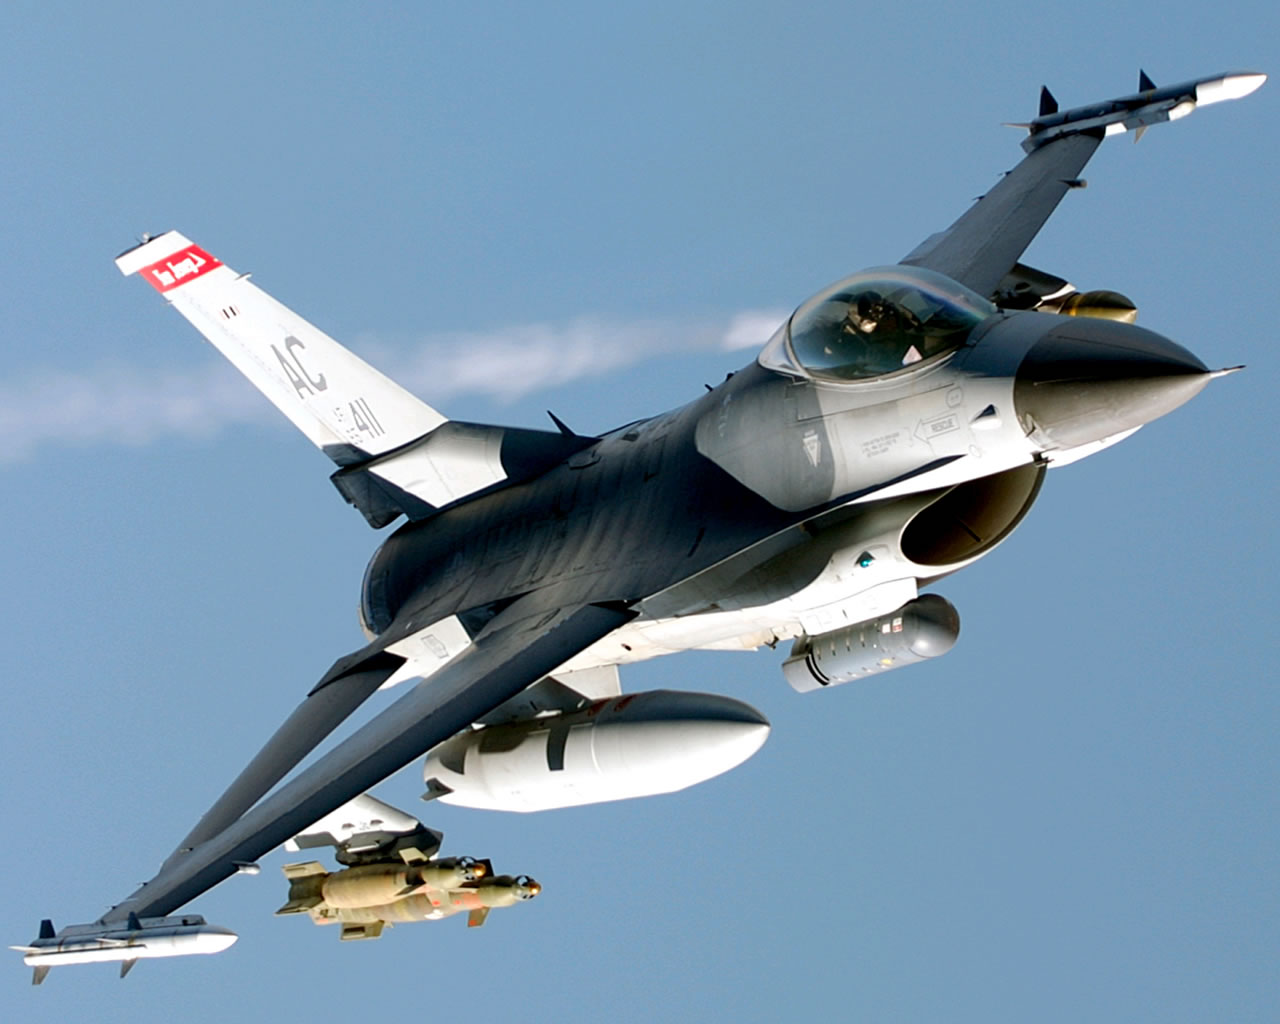 F-Fighting-Falcon-wallpaper-wp3401730